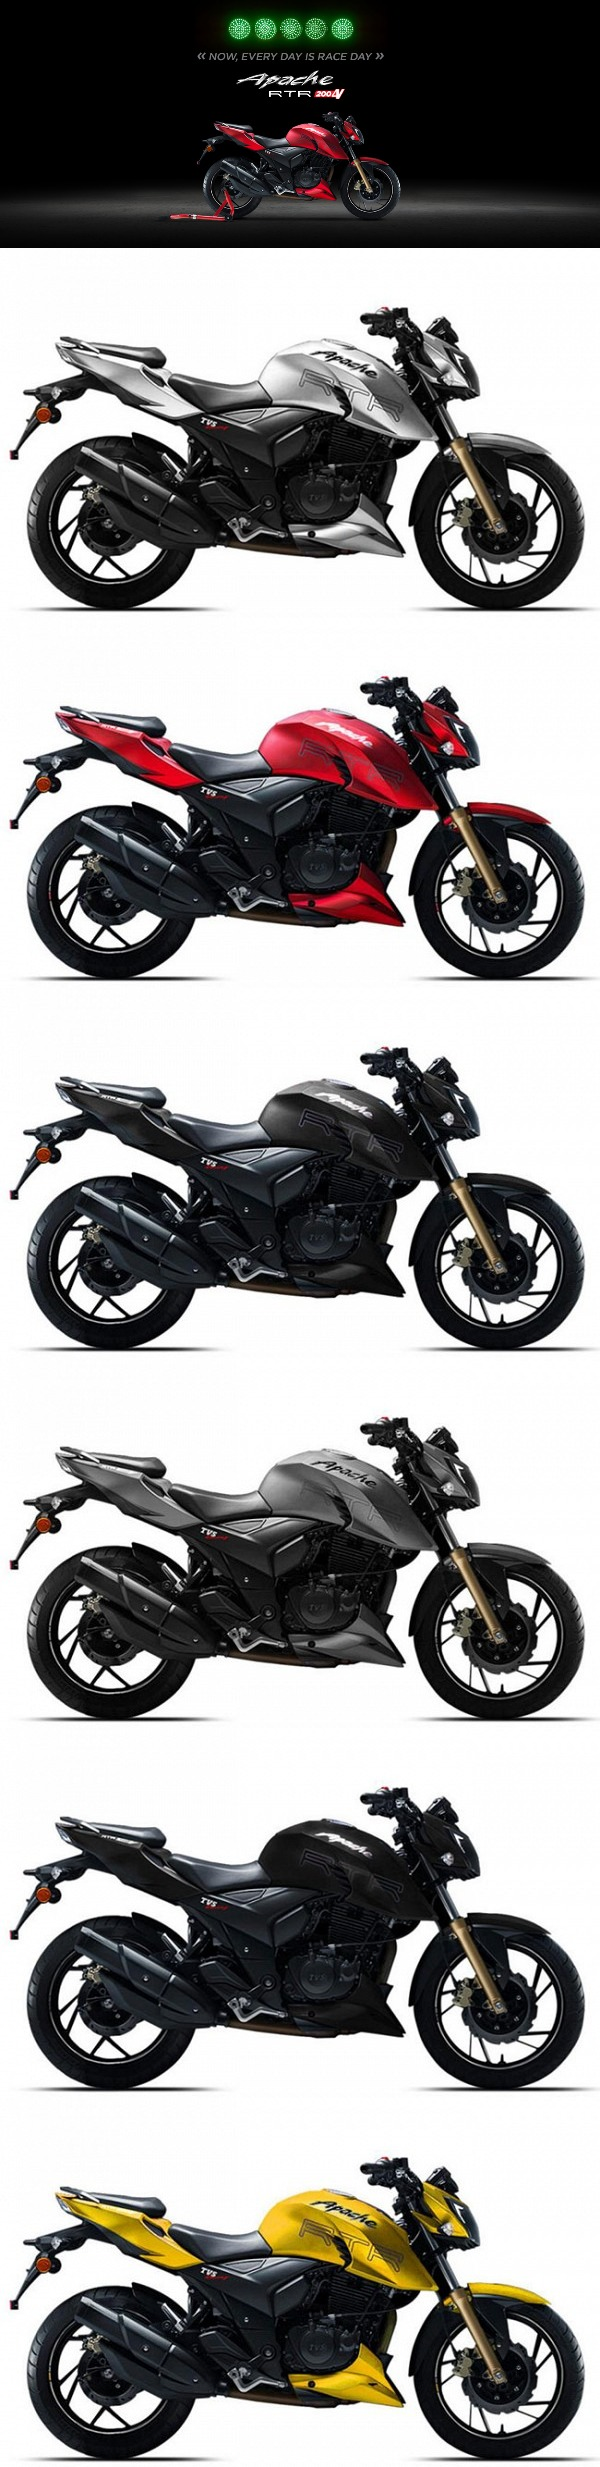 Now Every Day Is Race Day Tvs Apache Rtr200 Is